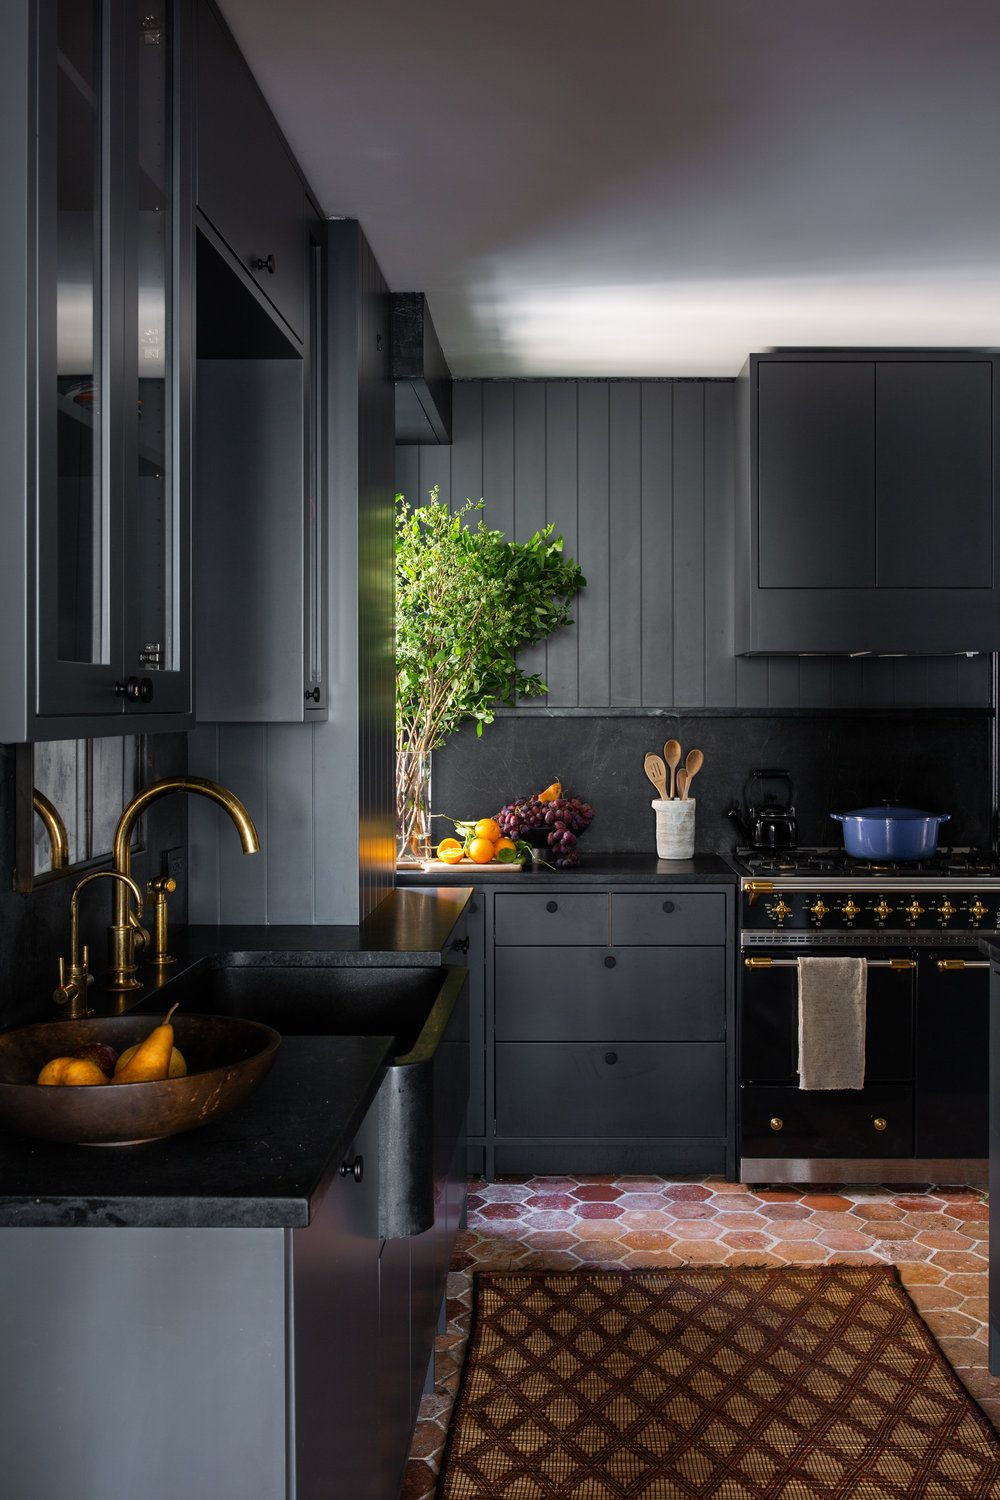 kitchen trends 2019 dark and moody vibes kitchen trends kitchen design dark kitchen on kitchen decor trends id=96163